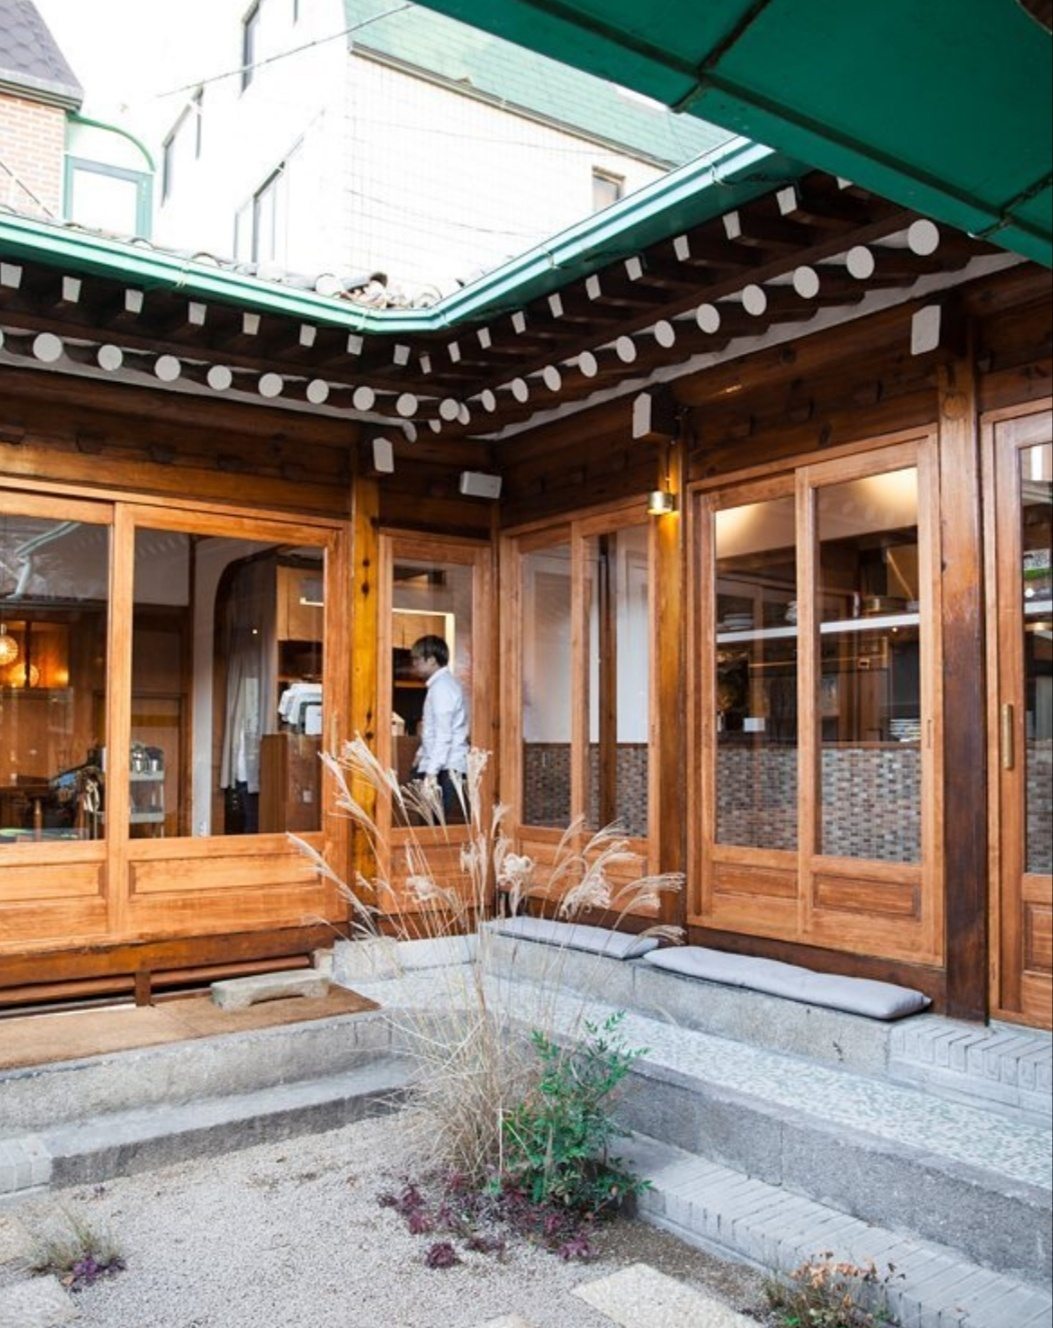 Hoho Sikdang first opened in a hanok in Daehangno, Seoul, in 2016. (Photo credit: hohosikdang)